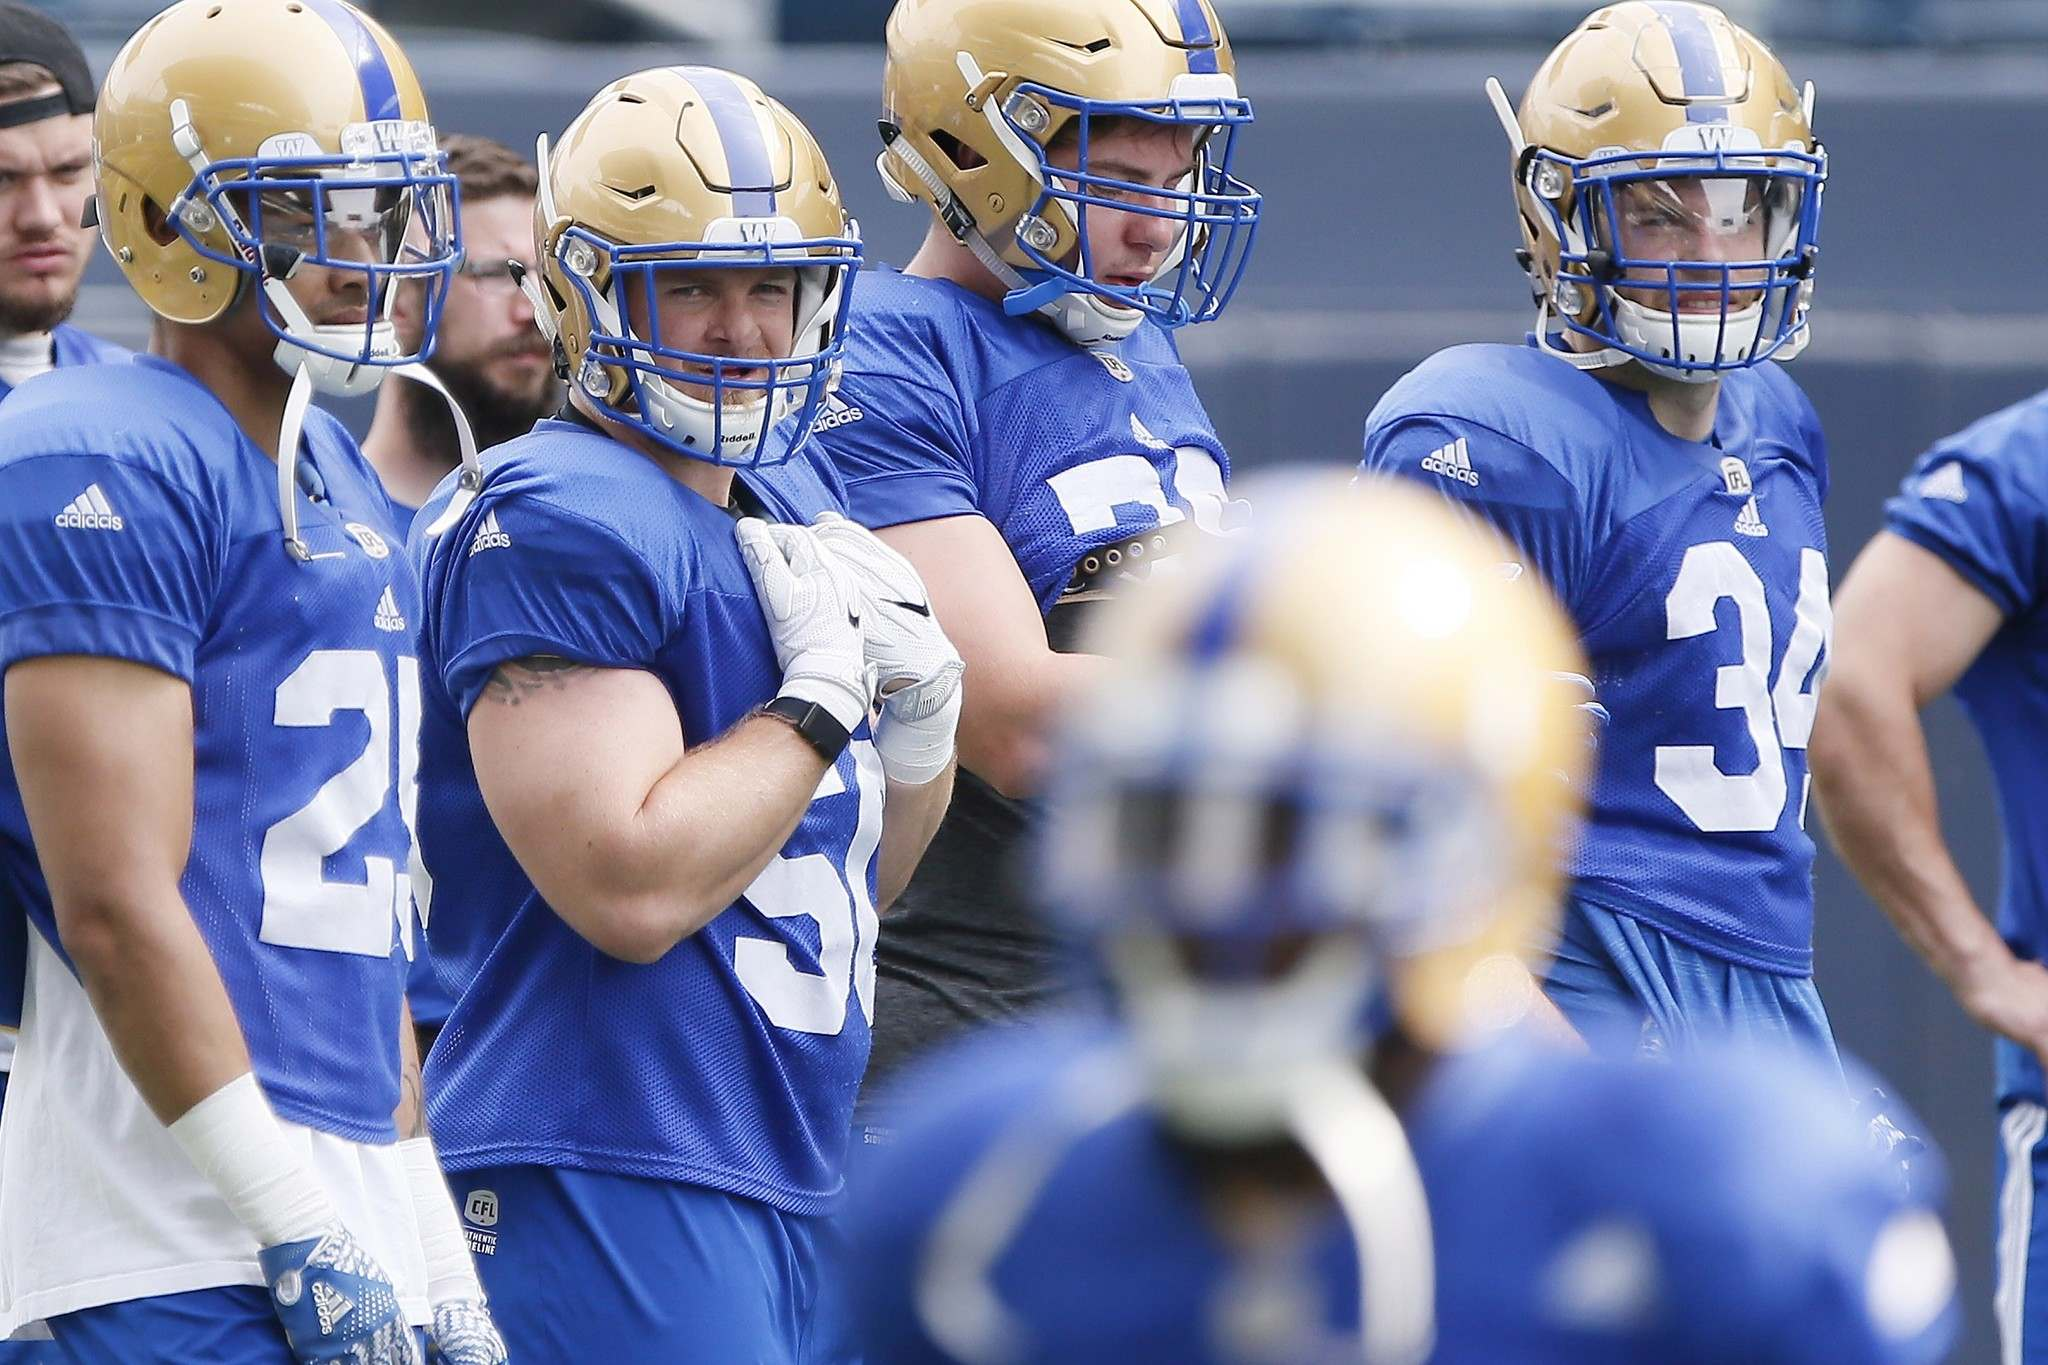 <p>New addition to the Winnipeg Blue Bombers Adam Bighill, second from left, watches drills at training camp in Winnipeg Thursday.</p>